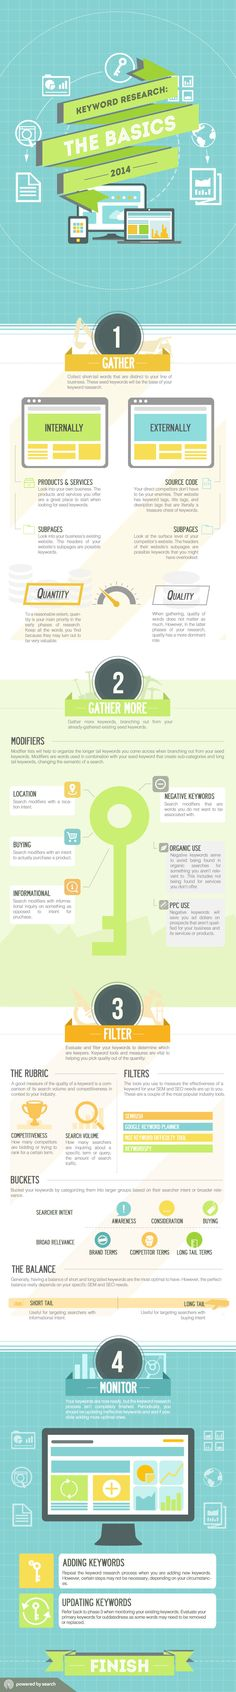 Keyword Research: The Basics 2014 #infographic #KeywordResearch #SEO I am so tired of Penguin and Panda updates. Aren't you? No SEO Forever - A Bestselling book on Amazon. http://getaccess.me/no-seo-forever-pinterest